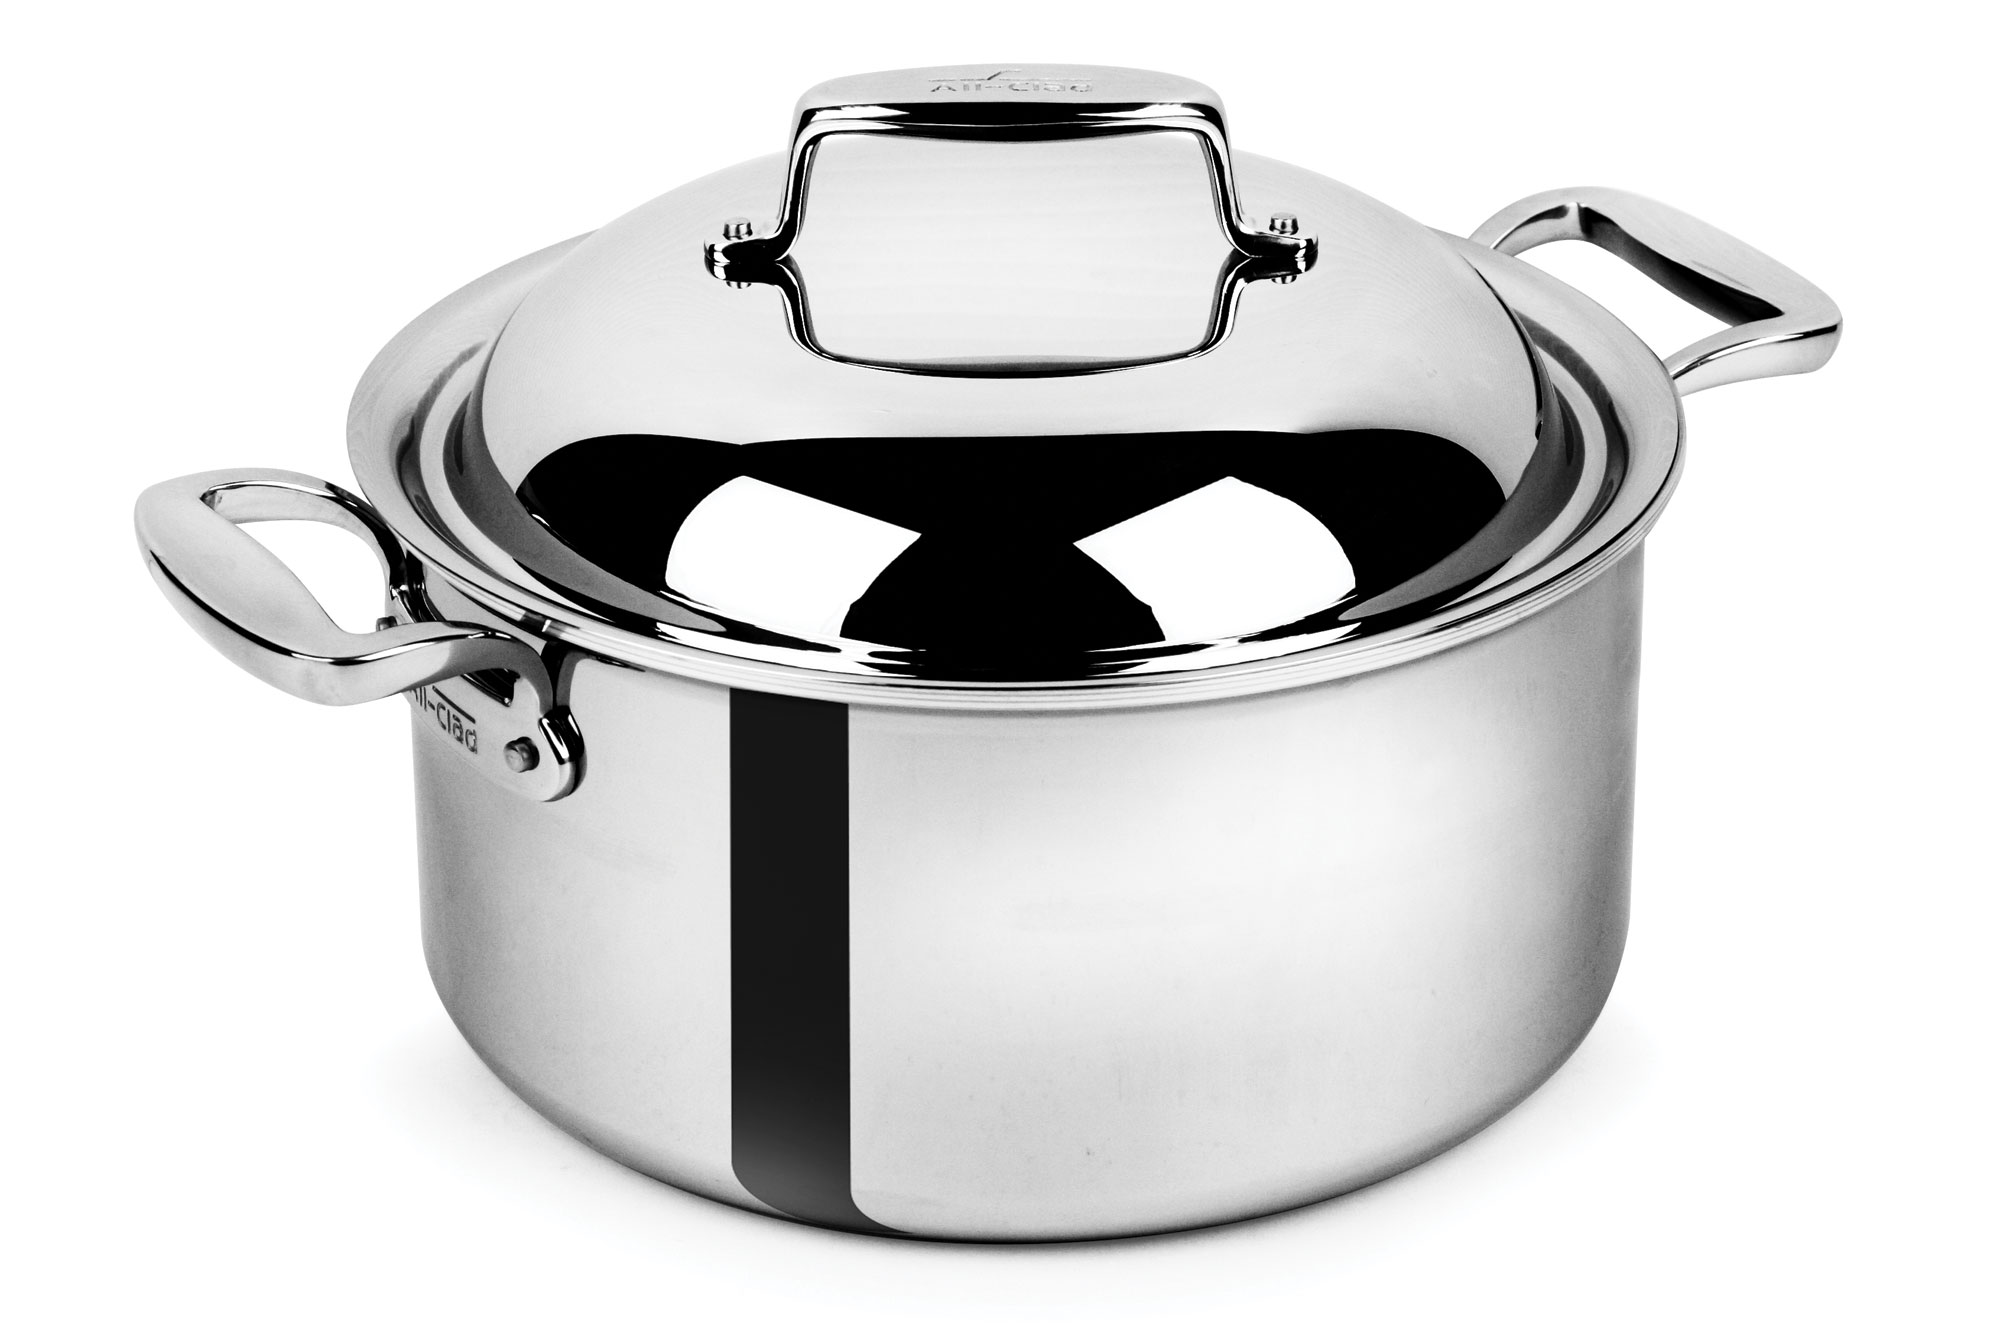 f4ffdde2ef22 All-Clad d7 Stainless Steel Round Dutch Oven, 8-quart | Cutlery and More